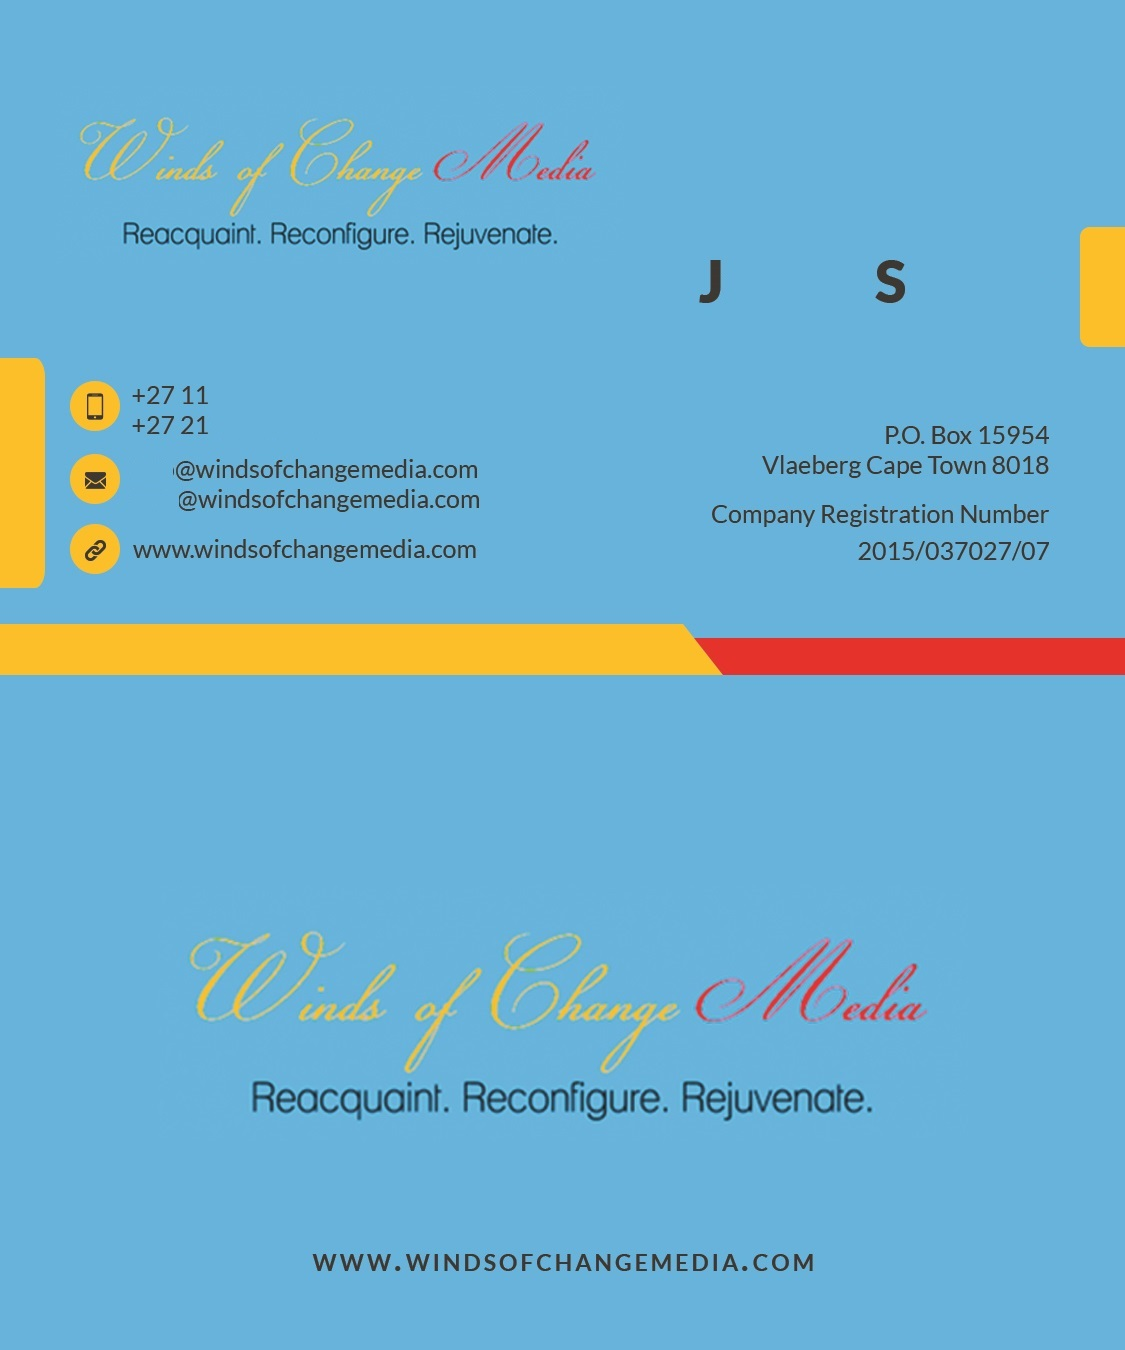 Winds of Change Media - Business Cards